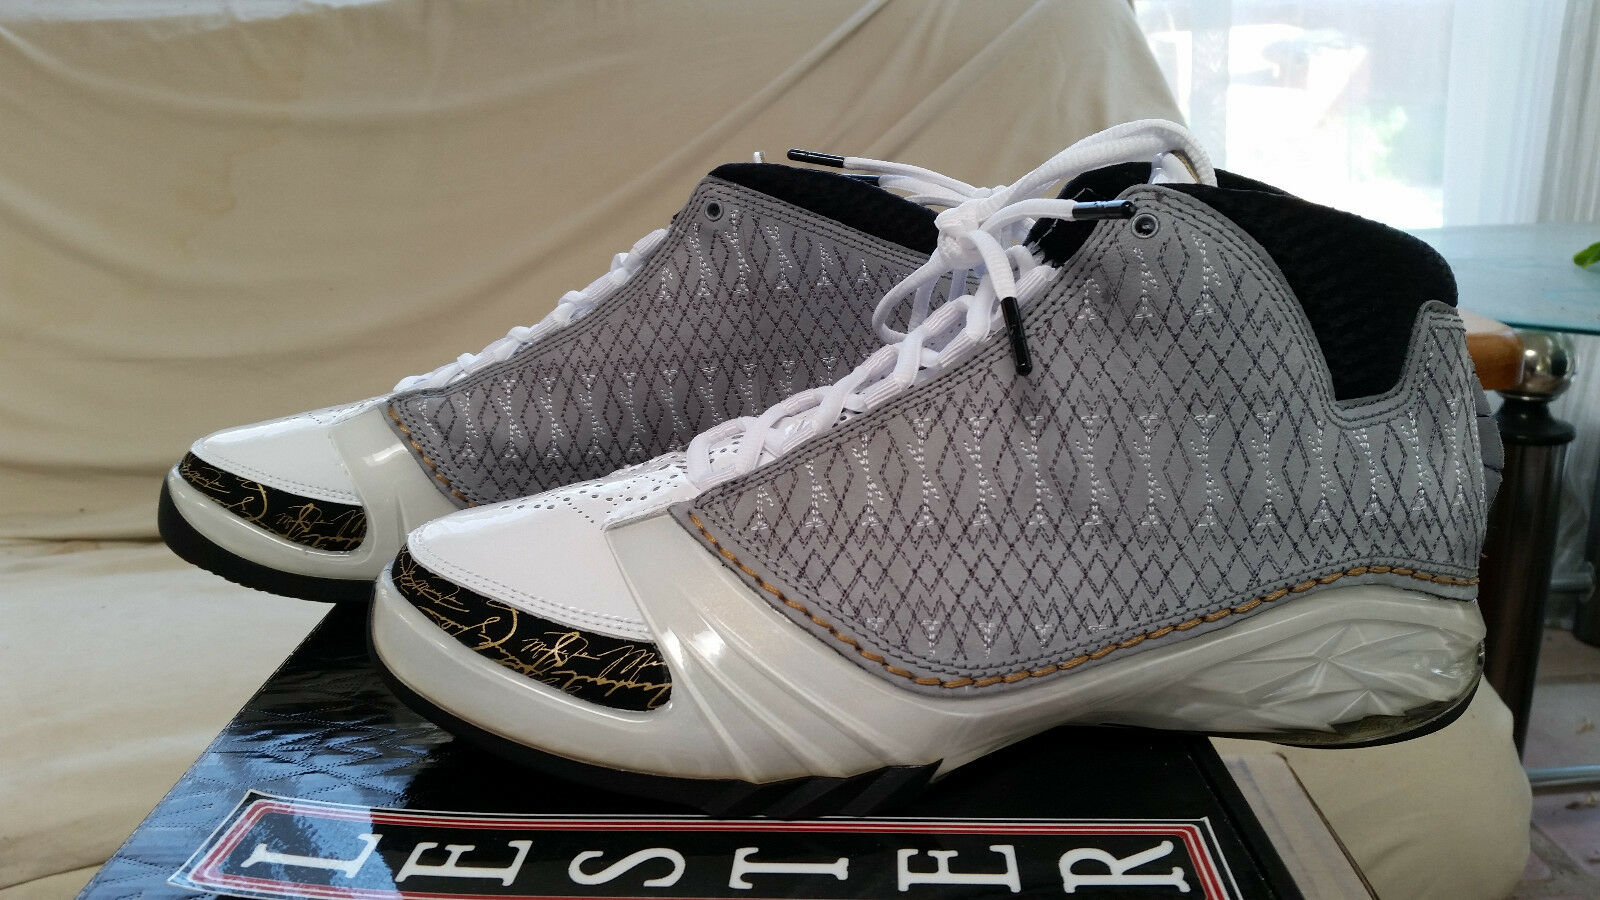 Nike Air Jordan XX3 23 White Stealth 318376 102 Black Grey gold White 2008 DS